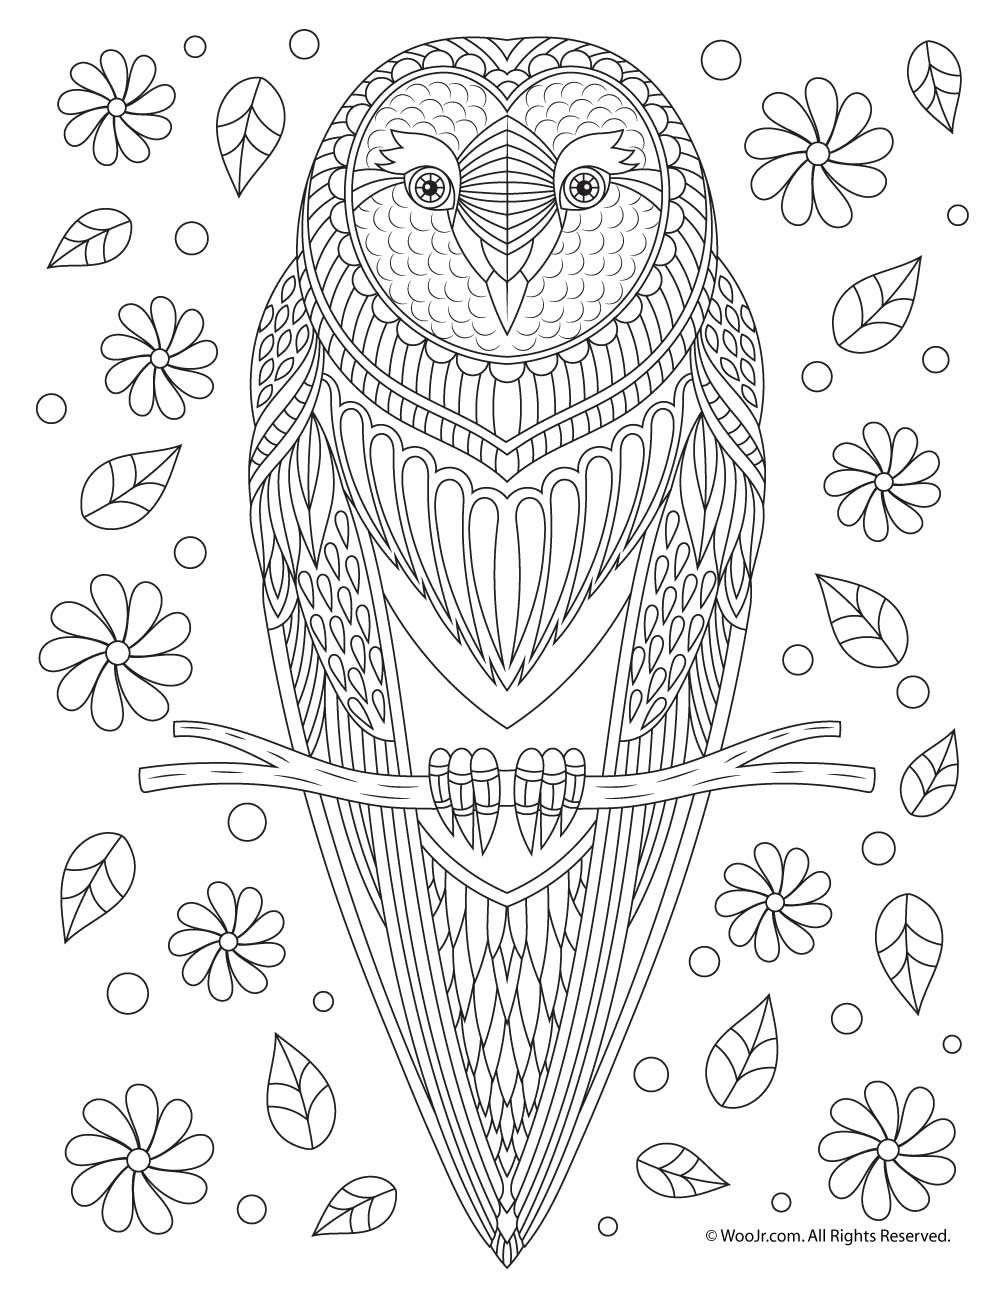 Owl Adult Coloring Page Owl Coloring Pages Bird Coloring Pages